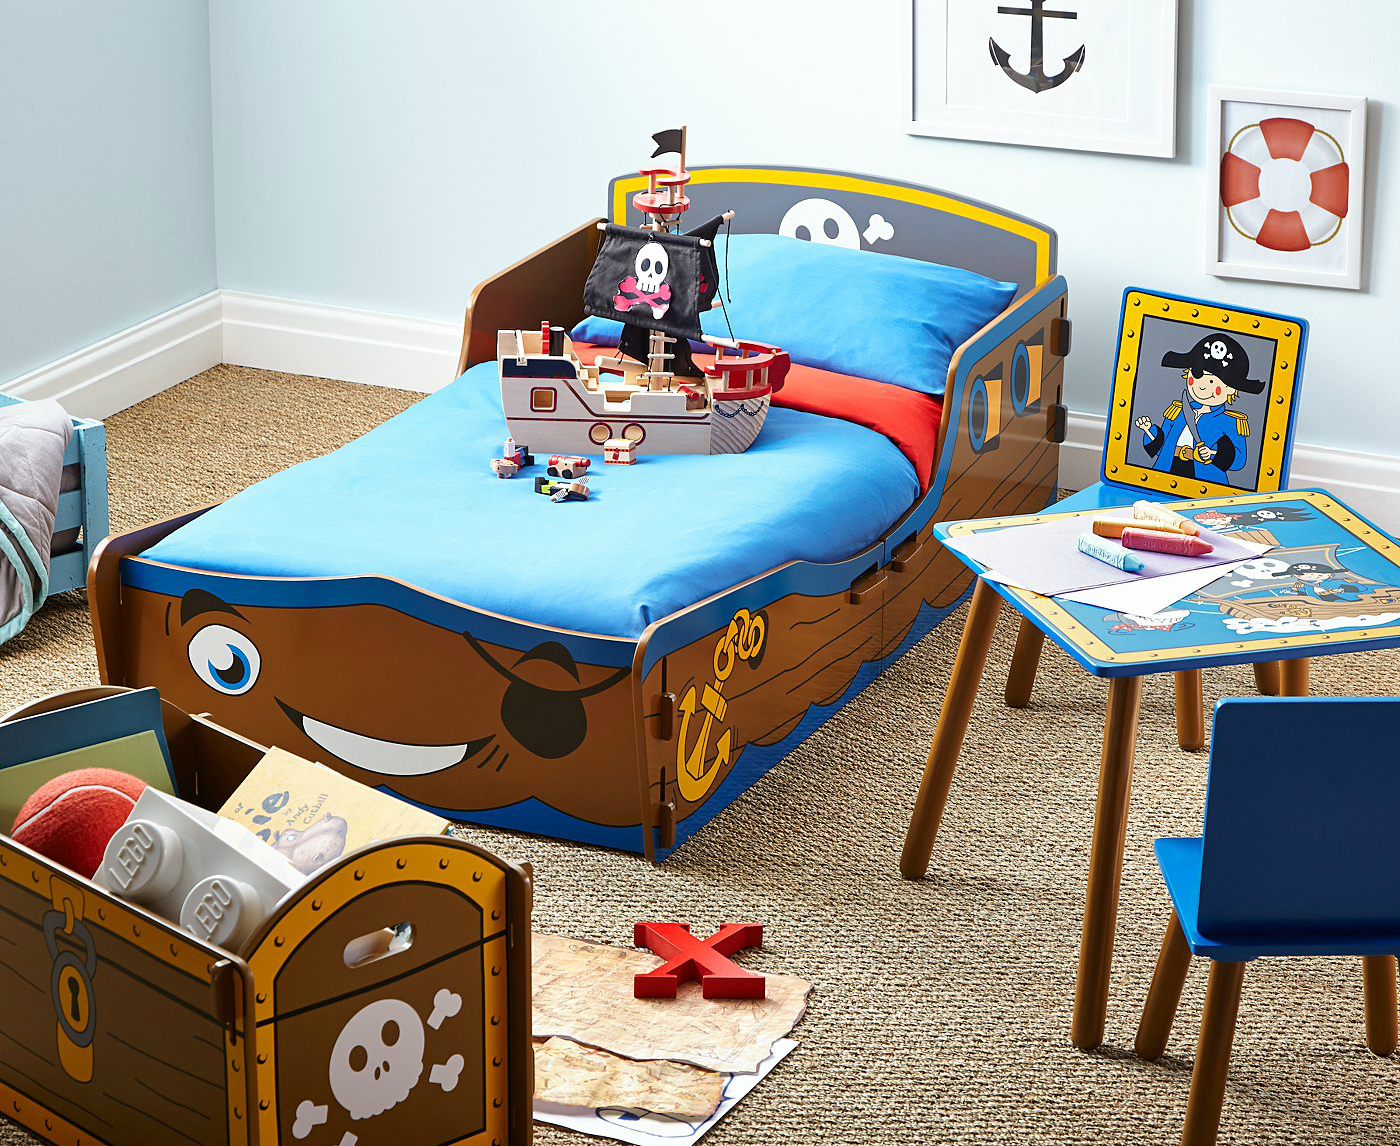 Pirate Themed Bedroom For A Toddler. Click Here To Find Out More: Http: